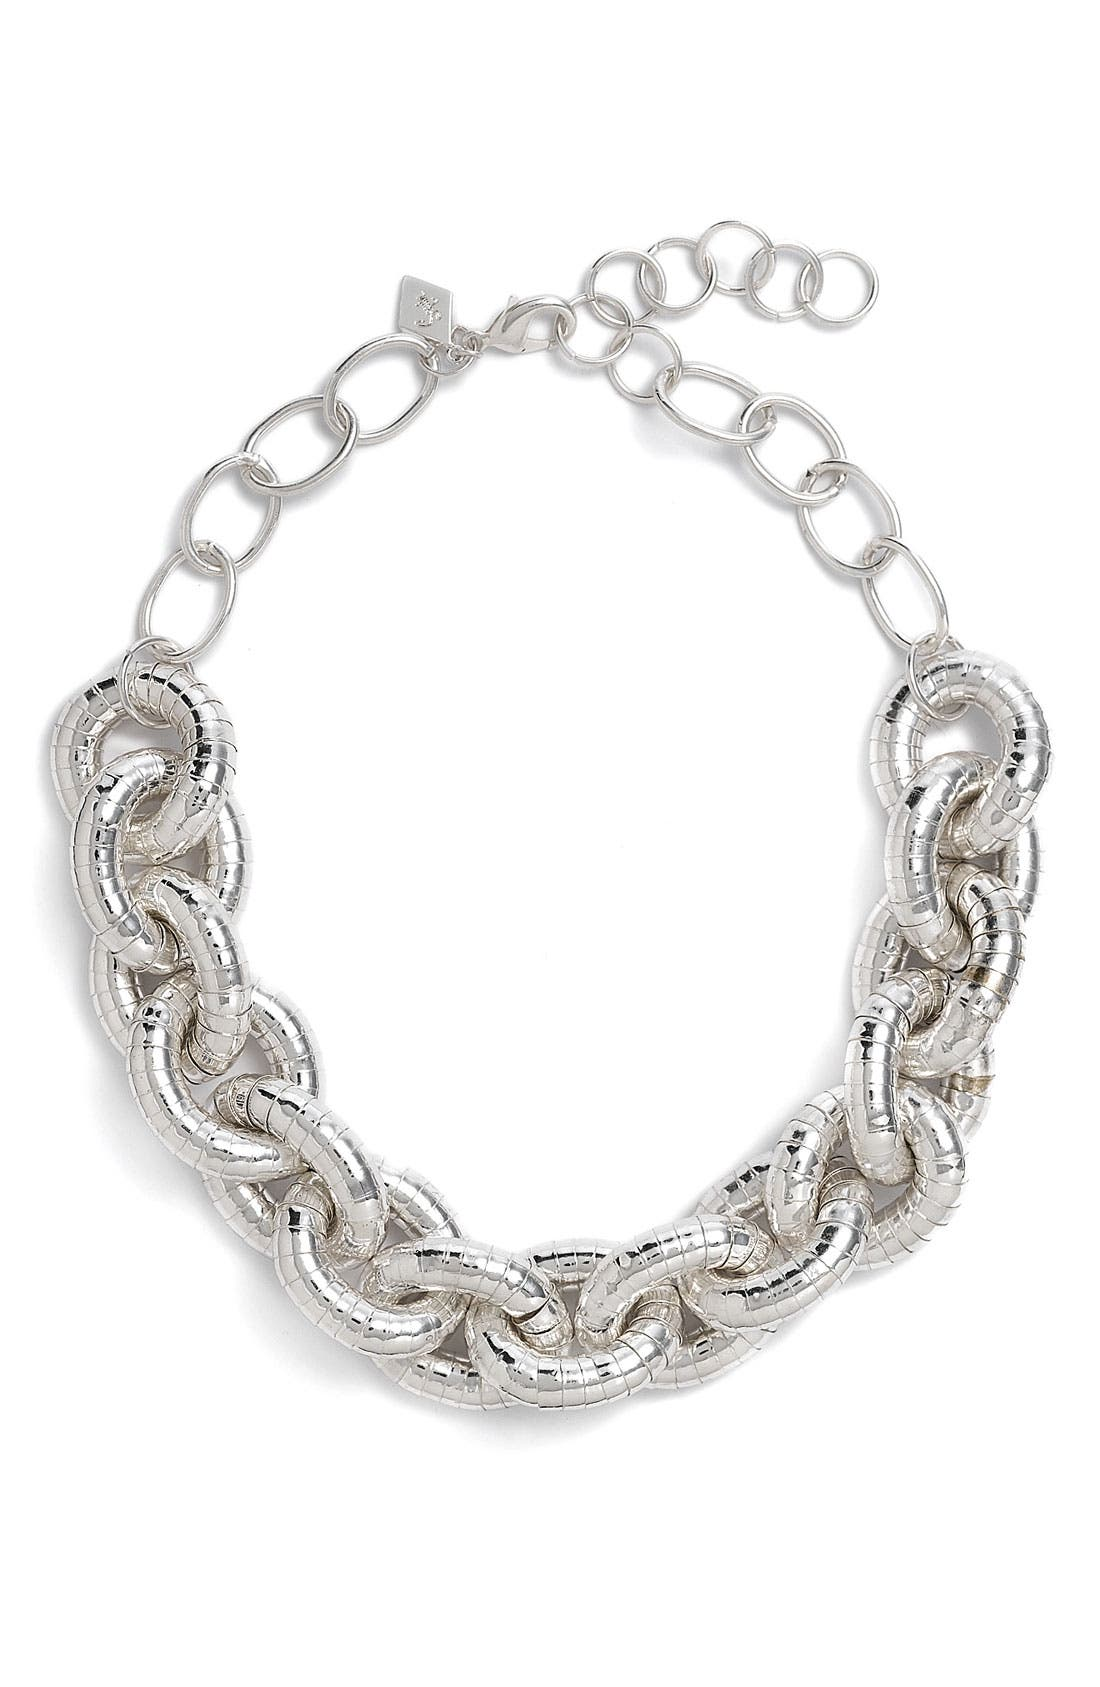 Alternate Image 1 Selected - Sequin Textured Status Link Necklace